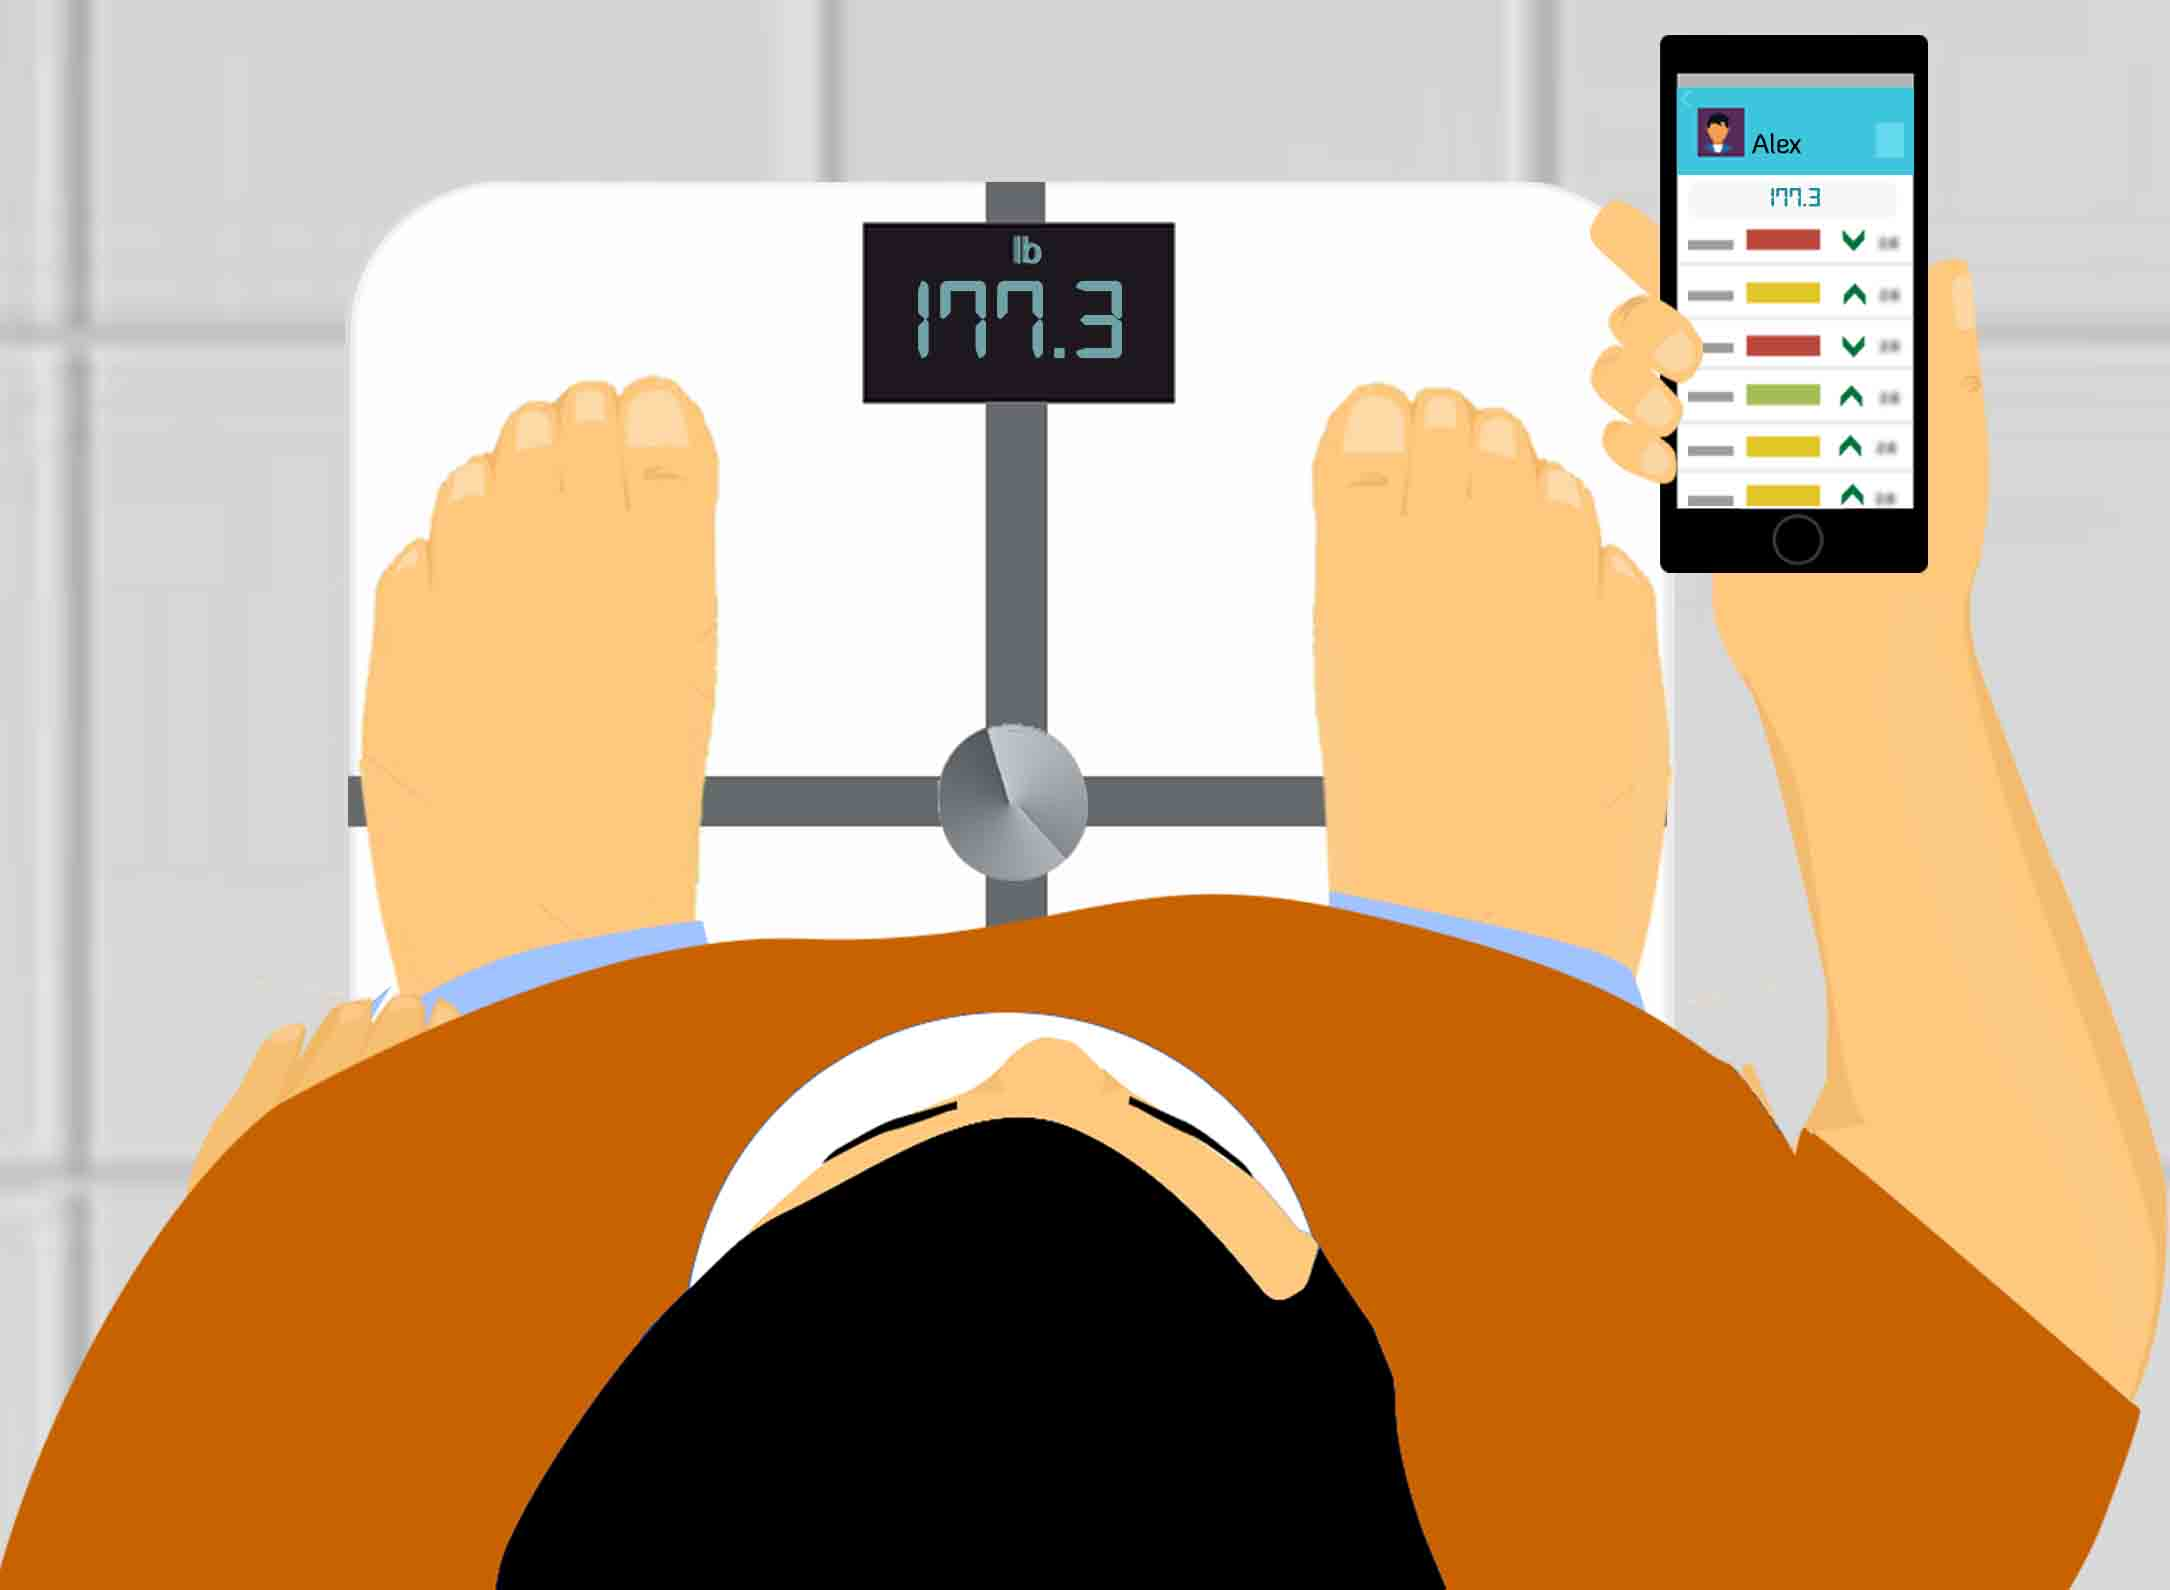 <p><b>A smart weighing scale measures important metrics.</b></p>